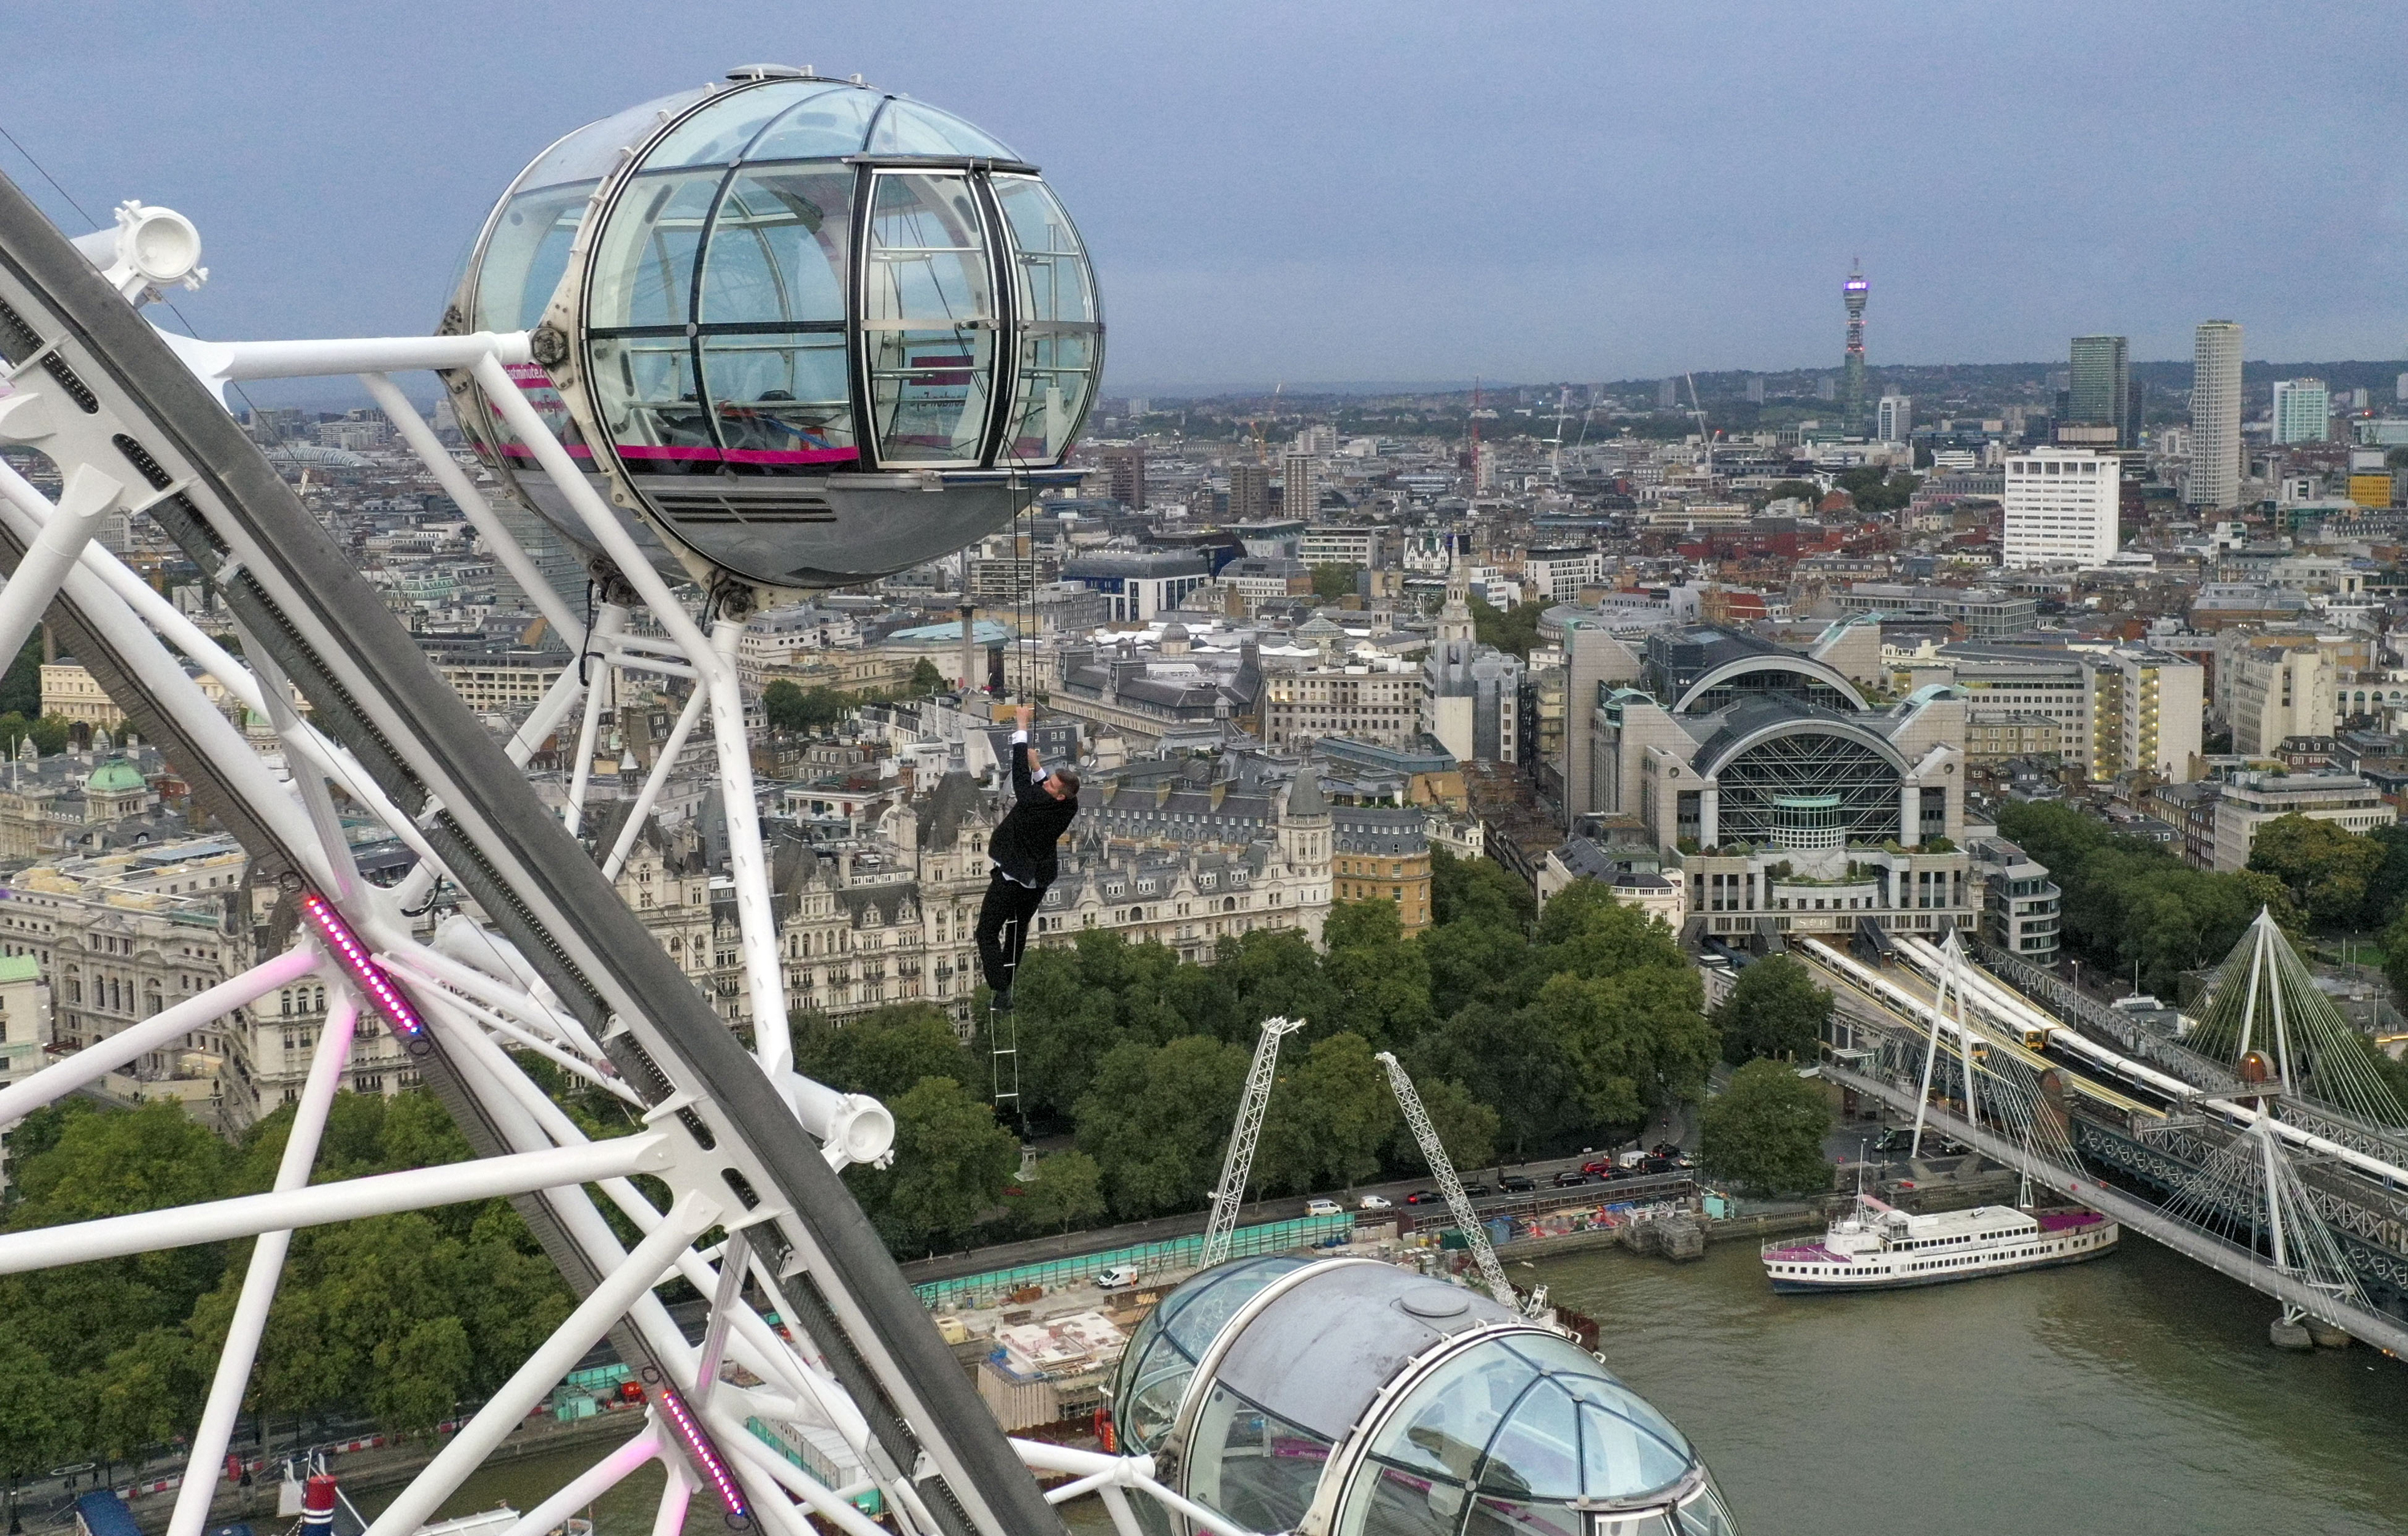 <p>A man dressed as Britain's most famous secret service agent, James Bond, is silhouetted against the London skyline as he climbs the outside of a pod on the lastminute.com London Eye, the landmark tourist attraction in central London, ahead of the world premiere of No Time To Die, the latest instalment in the Bond franchise. Picture date: Tuesday September 28, 2021.</p>